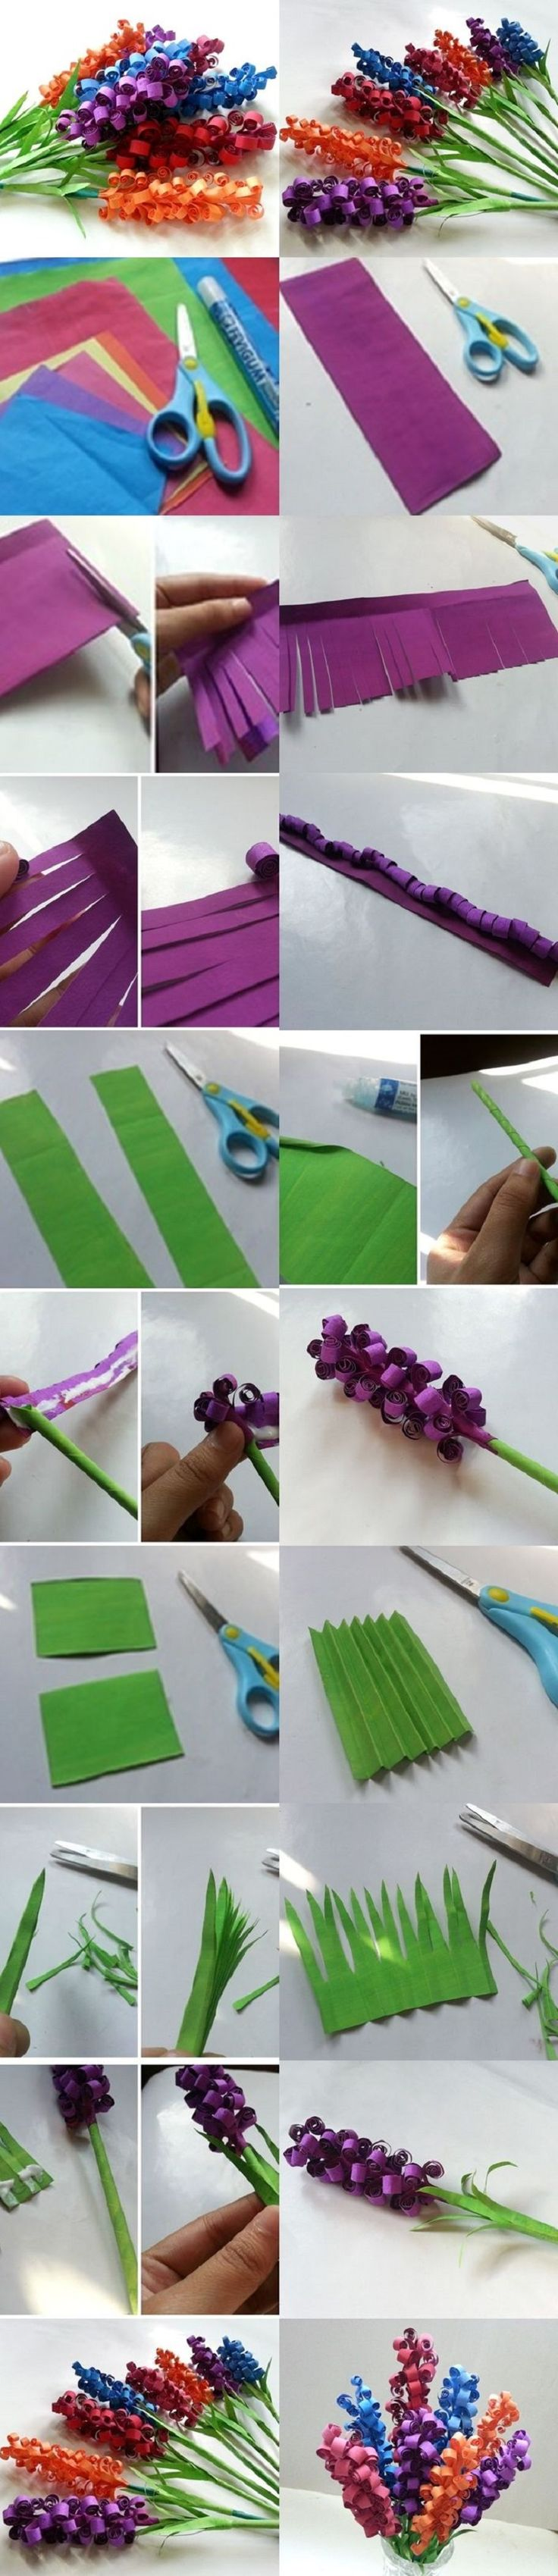 DIY Swirly Paper Flowers - 17 Blossoming DIY Spring Decorating Tutorials | GleamItUp